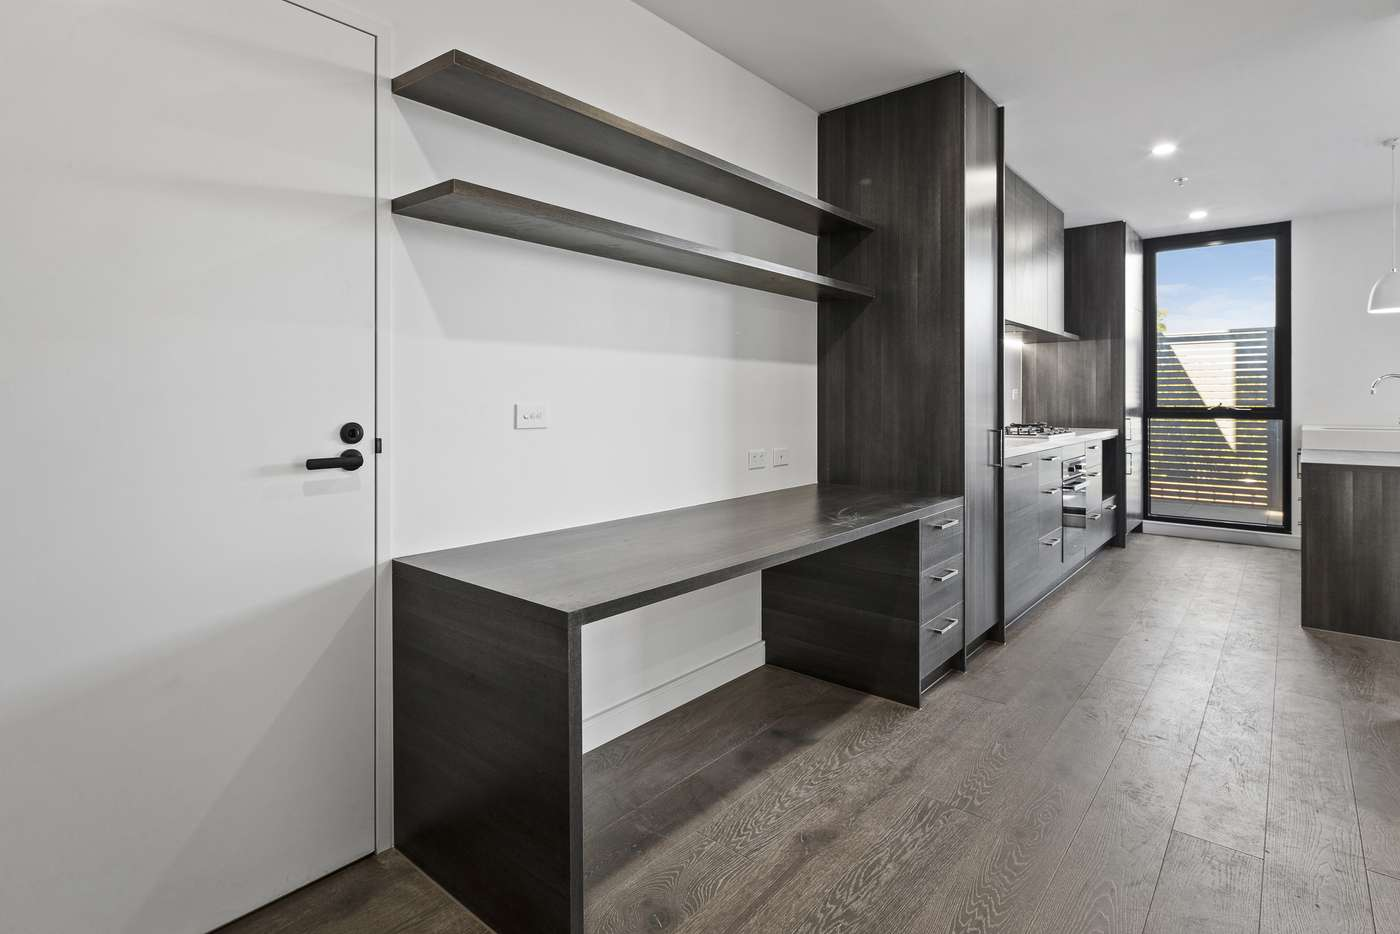 Seventh view of Homely apartment listing, Unit 107/817 Centre Rd, Bentleigh East VIC 3165